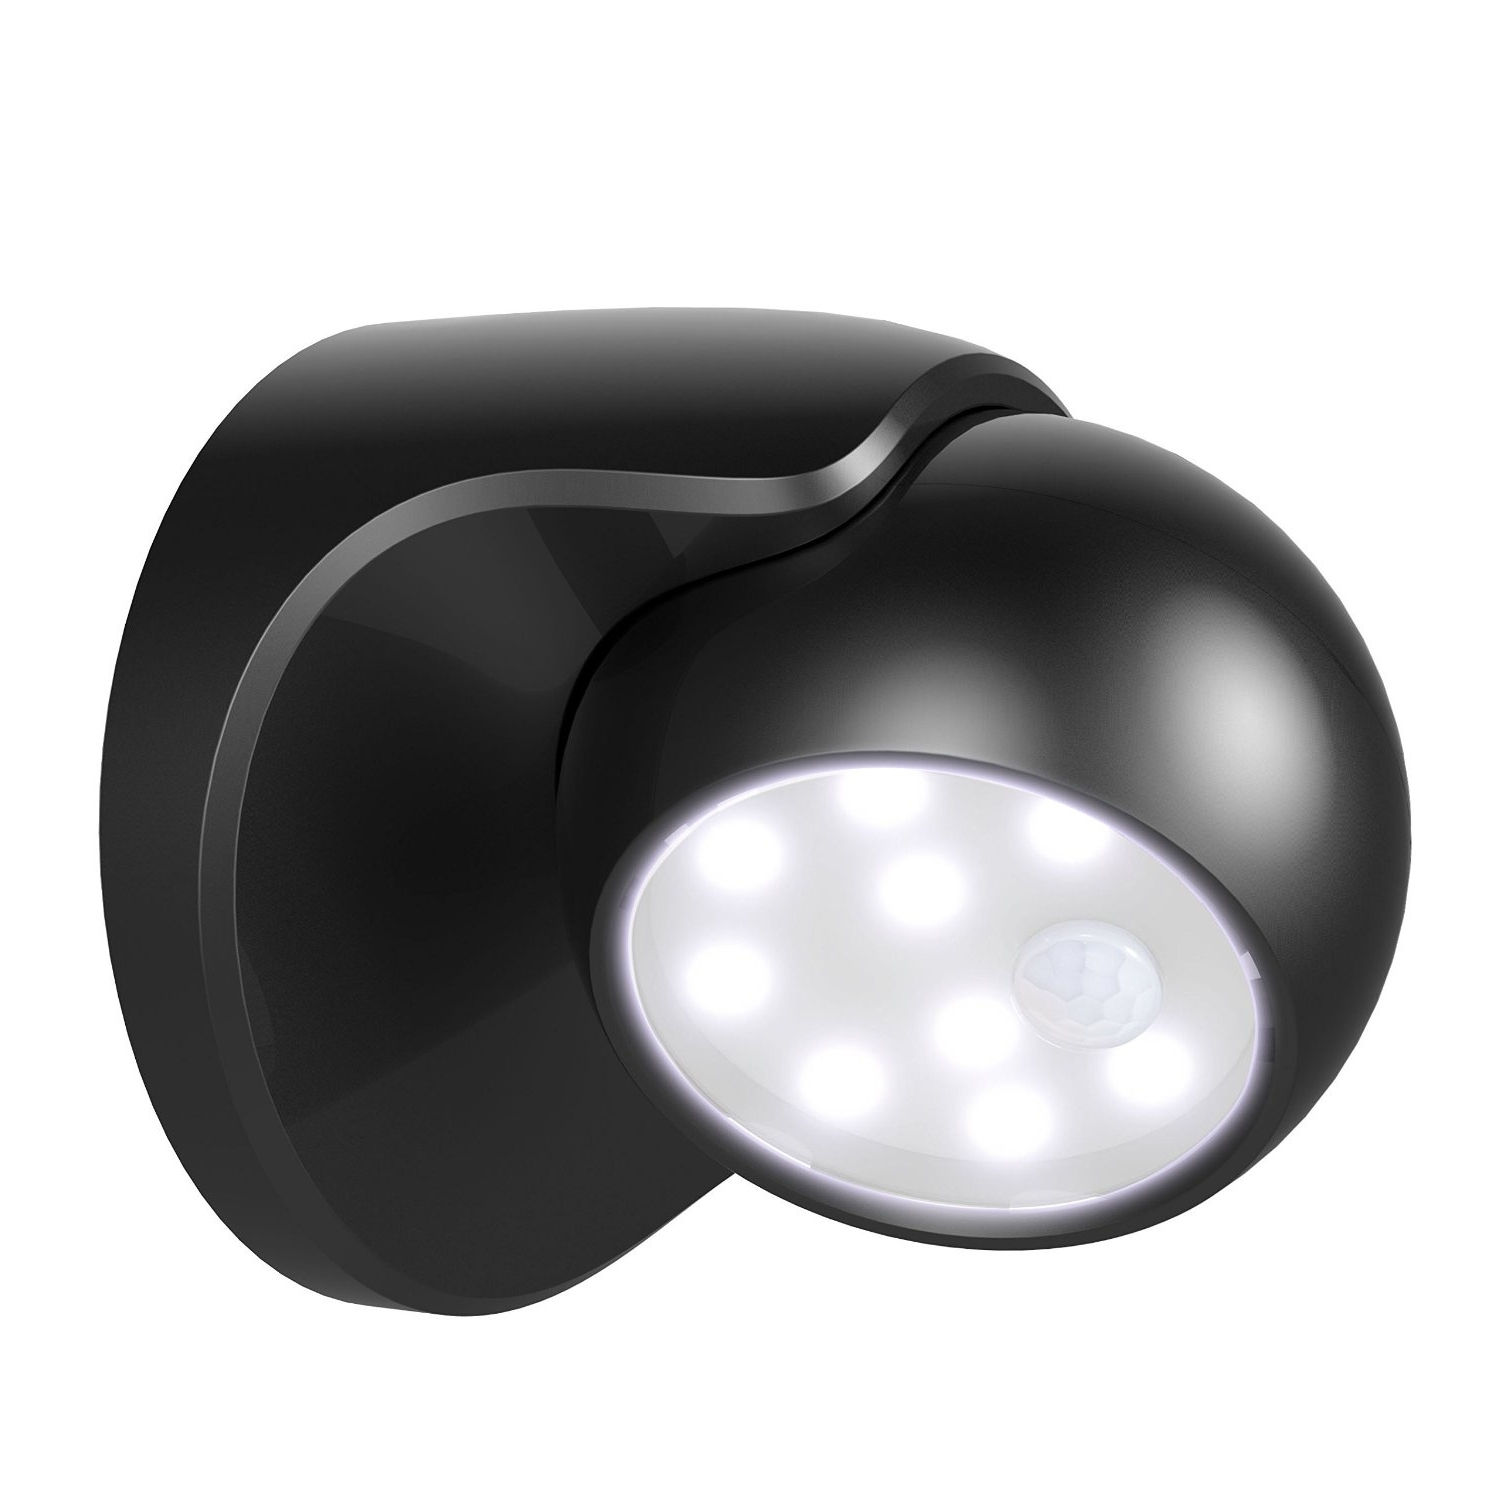 Outdoor Lighting: Amusing Outdoor Ceiling Sensor Light Best Outdoor Within Well Liked Battery Operated Outdoor Lights At Wayfair (View 19 of 20)